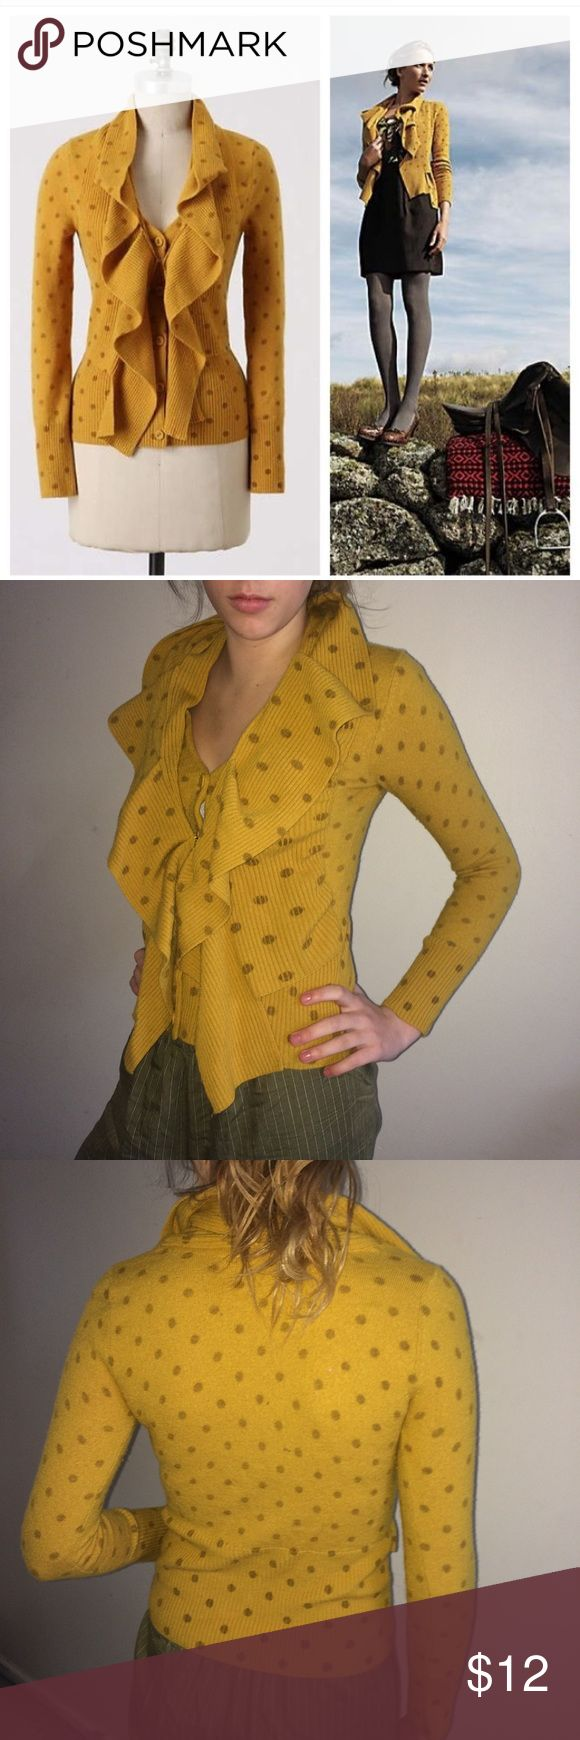 """Anthropologie Moth Van Wrinkle Sweater By Moth. Anthropologie's """"Van Wrinkle"""" sweater.  Cozy up for 100 years in a hearty wool vest topped by a sleep- mused Cardigan. Mustard yellow. 91% Wool, 8% Nylon, 1% Spandex. Hand wash cold. For reference, my model is 5 feet 8.5"""" tall and weighs 120 pounds. This sweater is in very good condition EXCEPT there are several small holes along the back, some of which can be seen in the last photo. Price is reduced accordingly. U Anthropologie Sweaters…"""